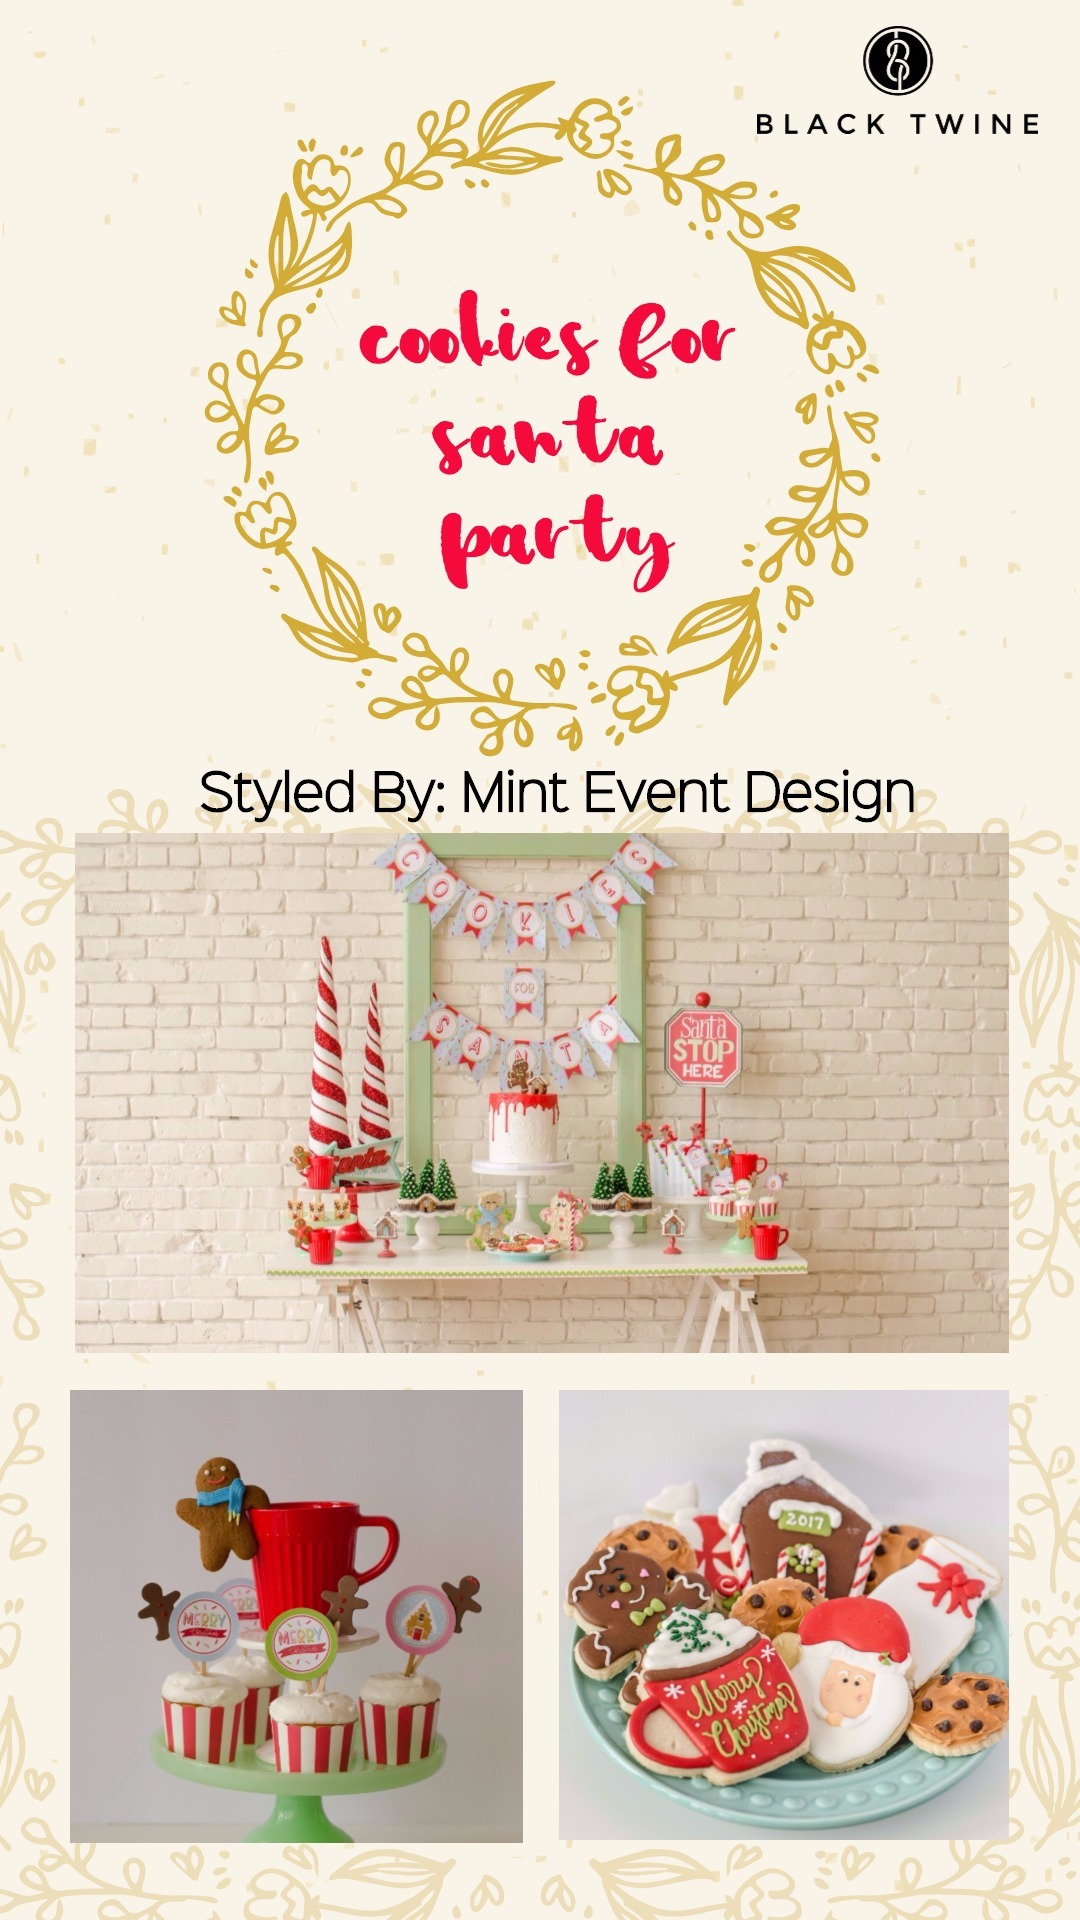 Cookies for Santa Party by Mint Event Design | Black Twine